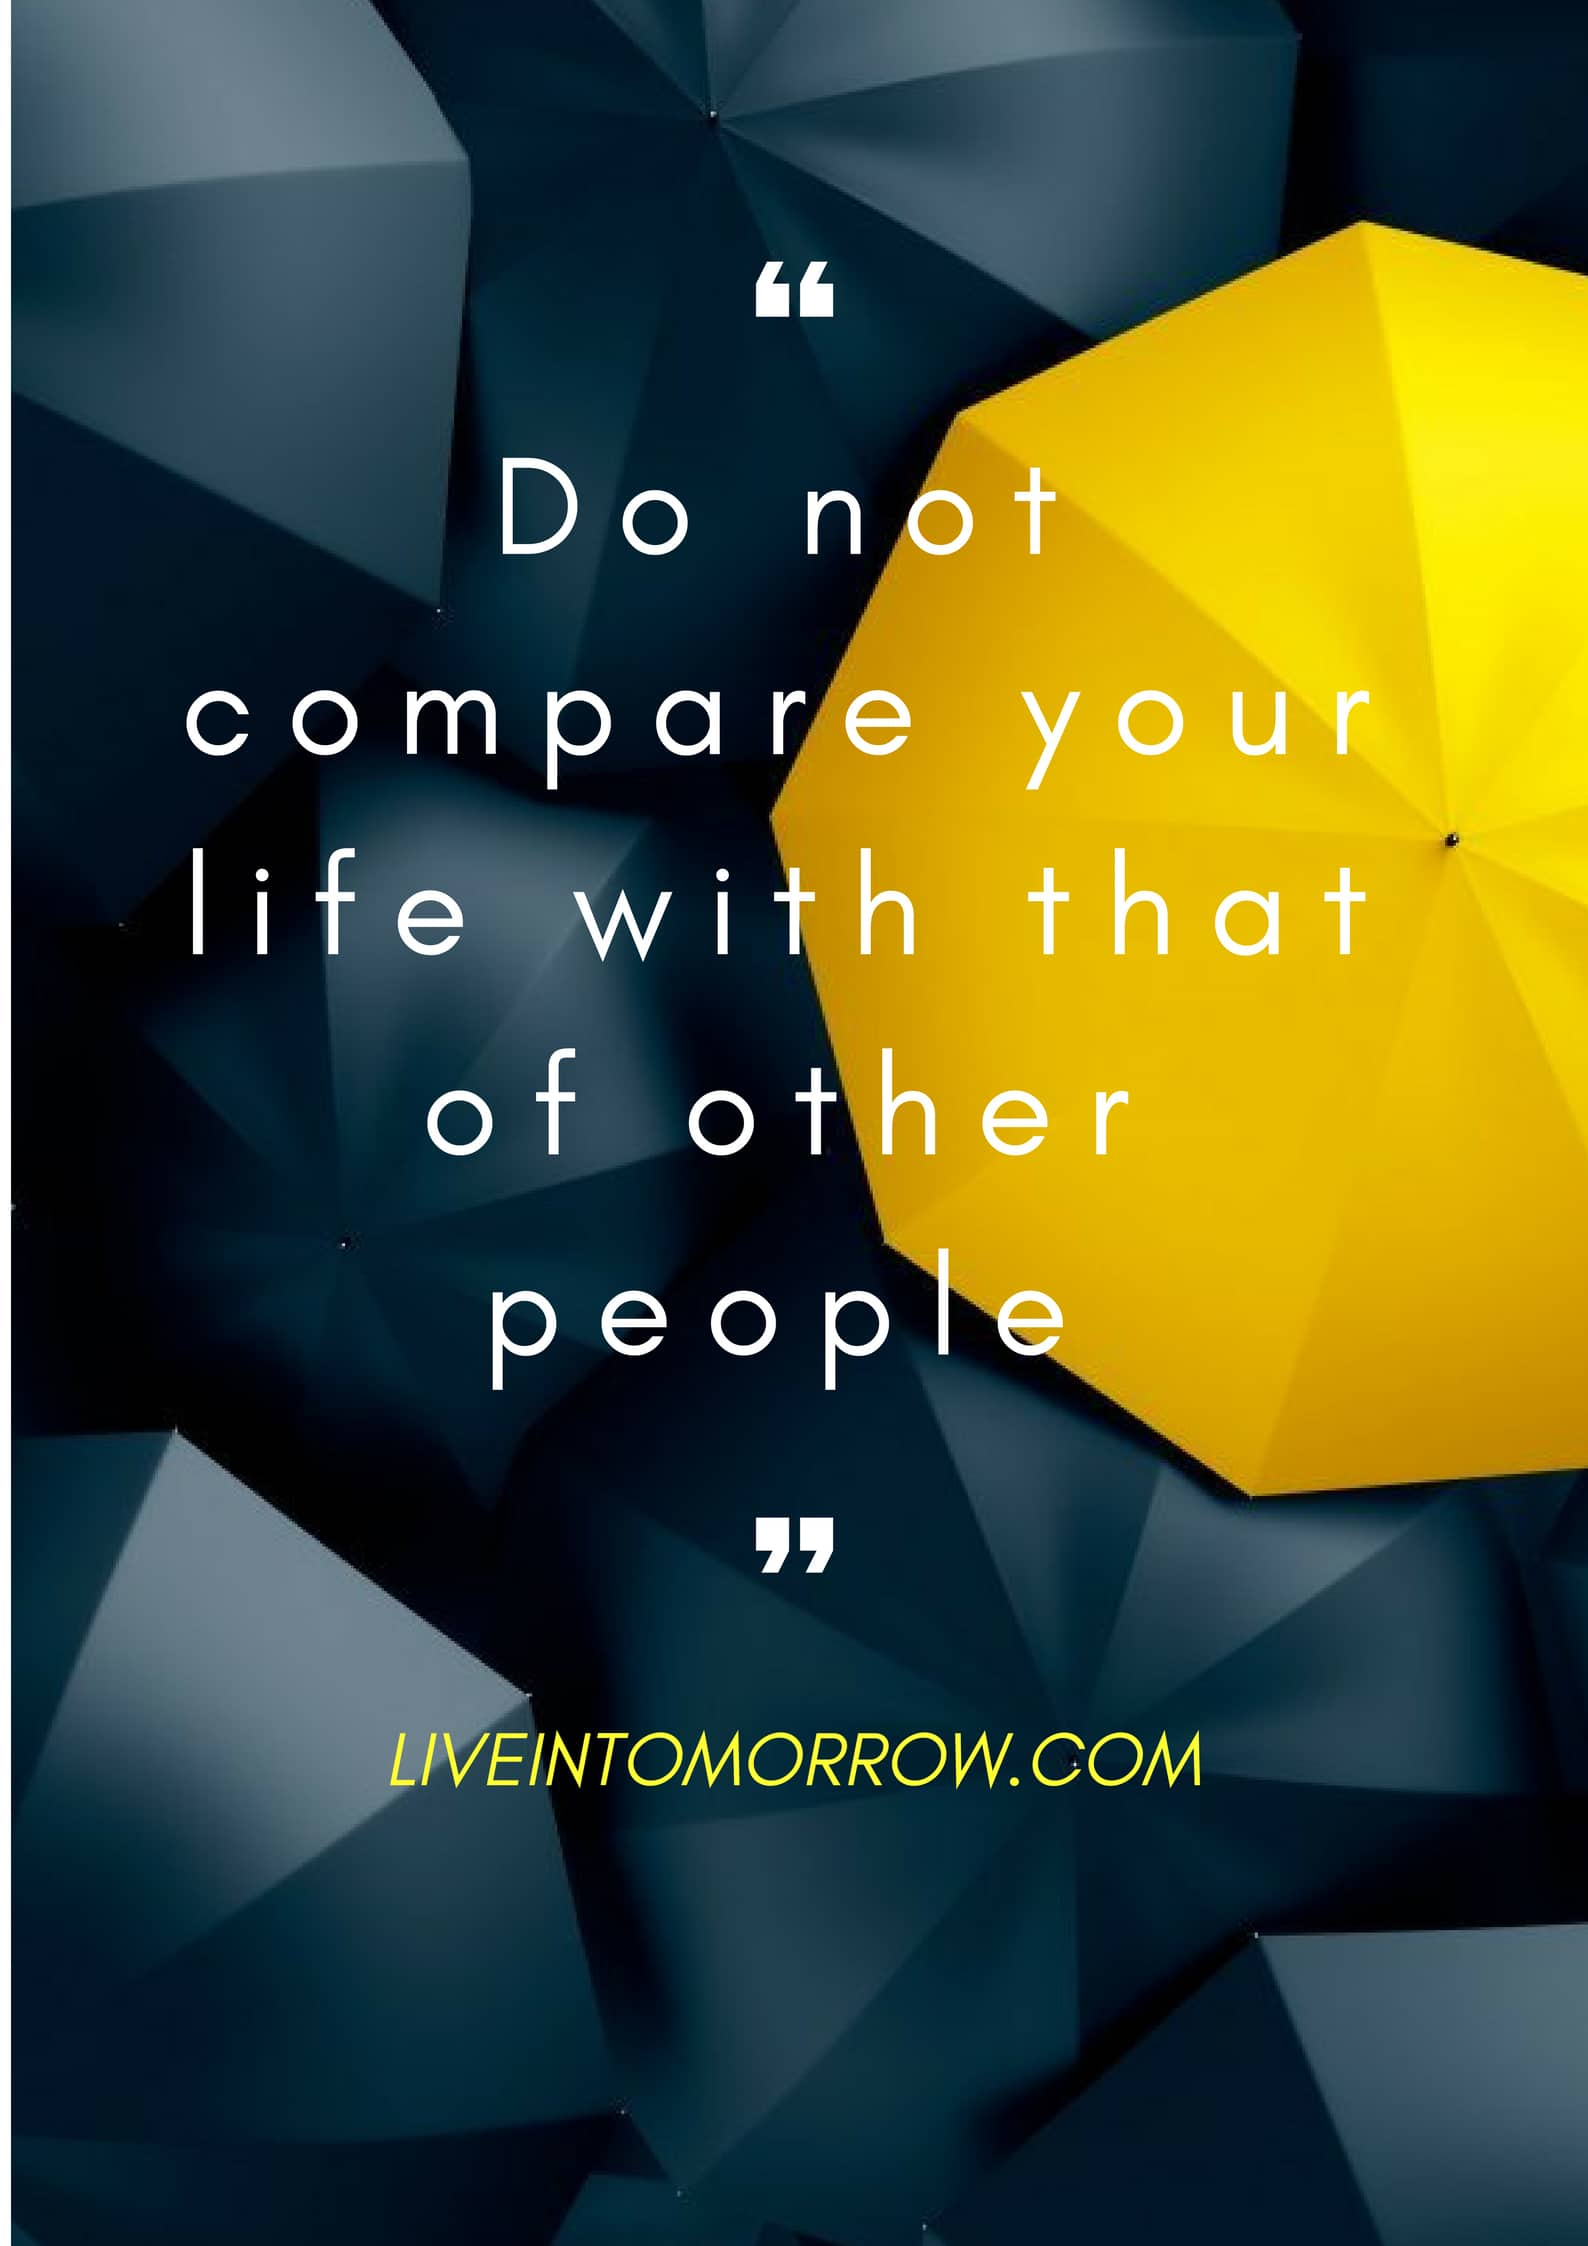 do not compare your life with other people_Liveintomorrow